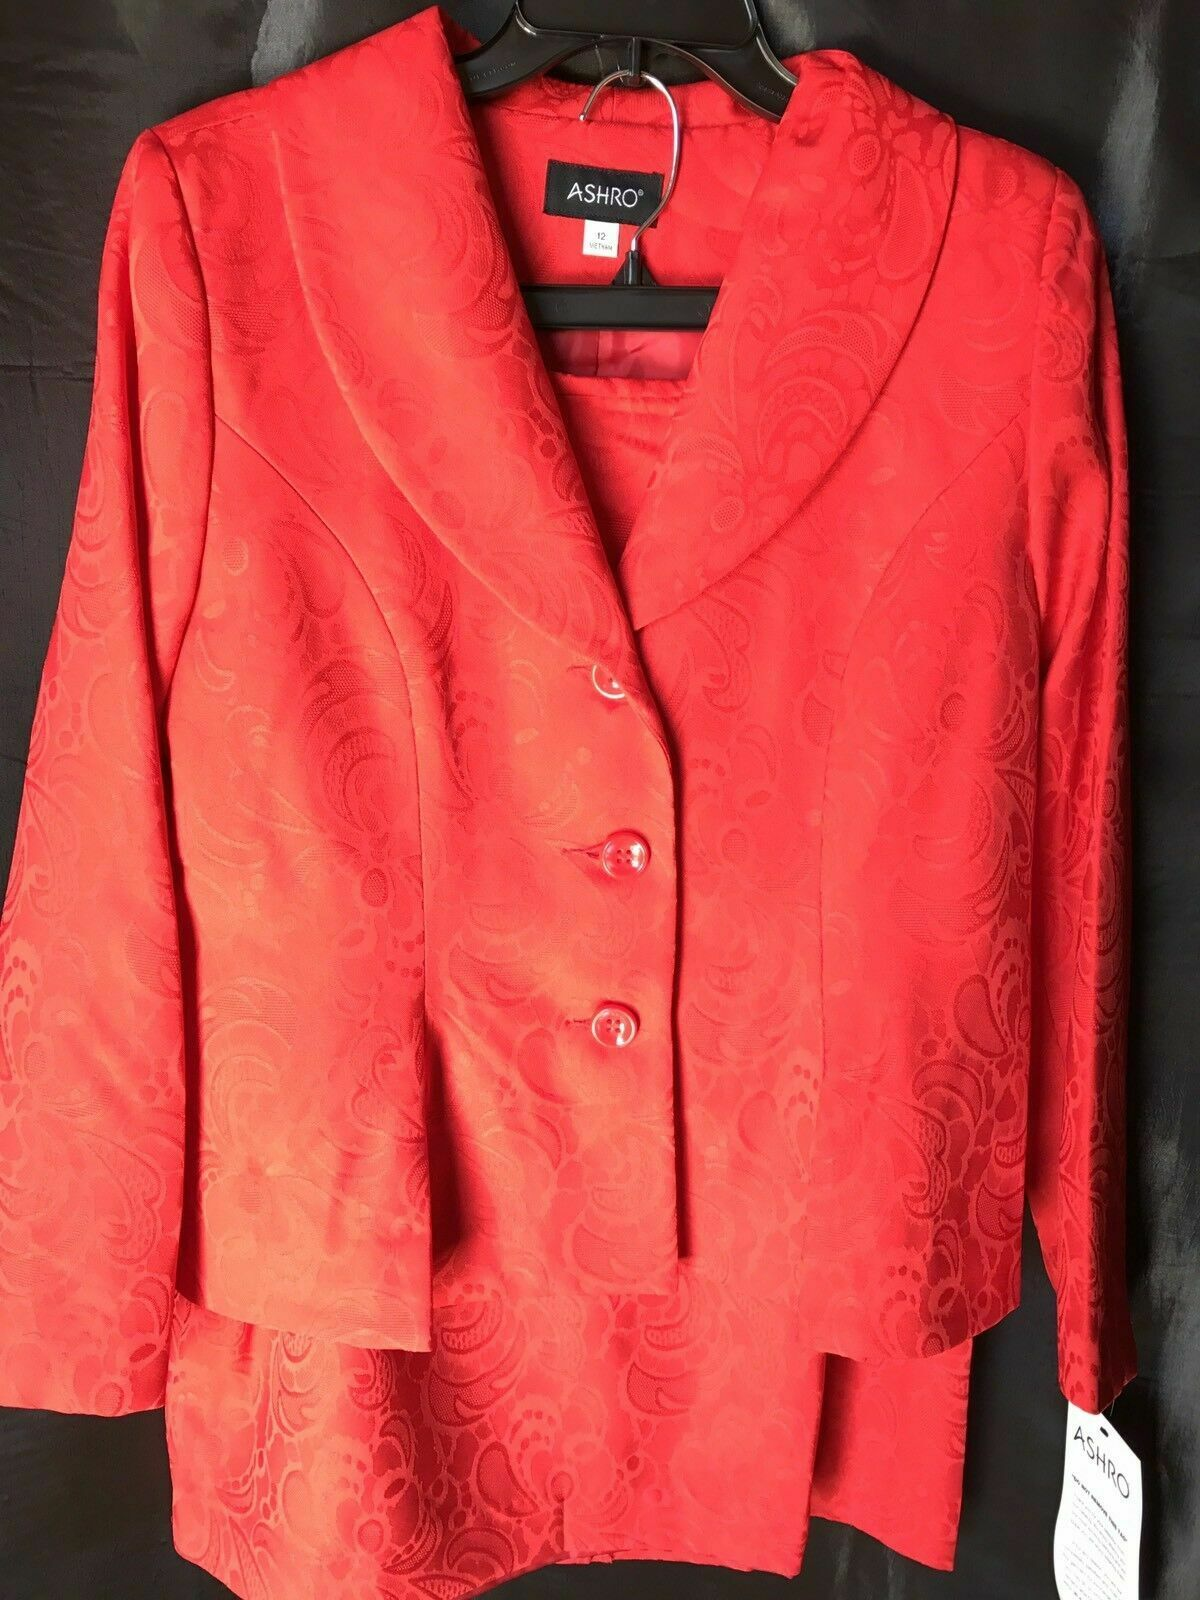 plus size 24W Red Brocade Skirt Suit by Ashro new